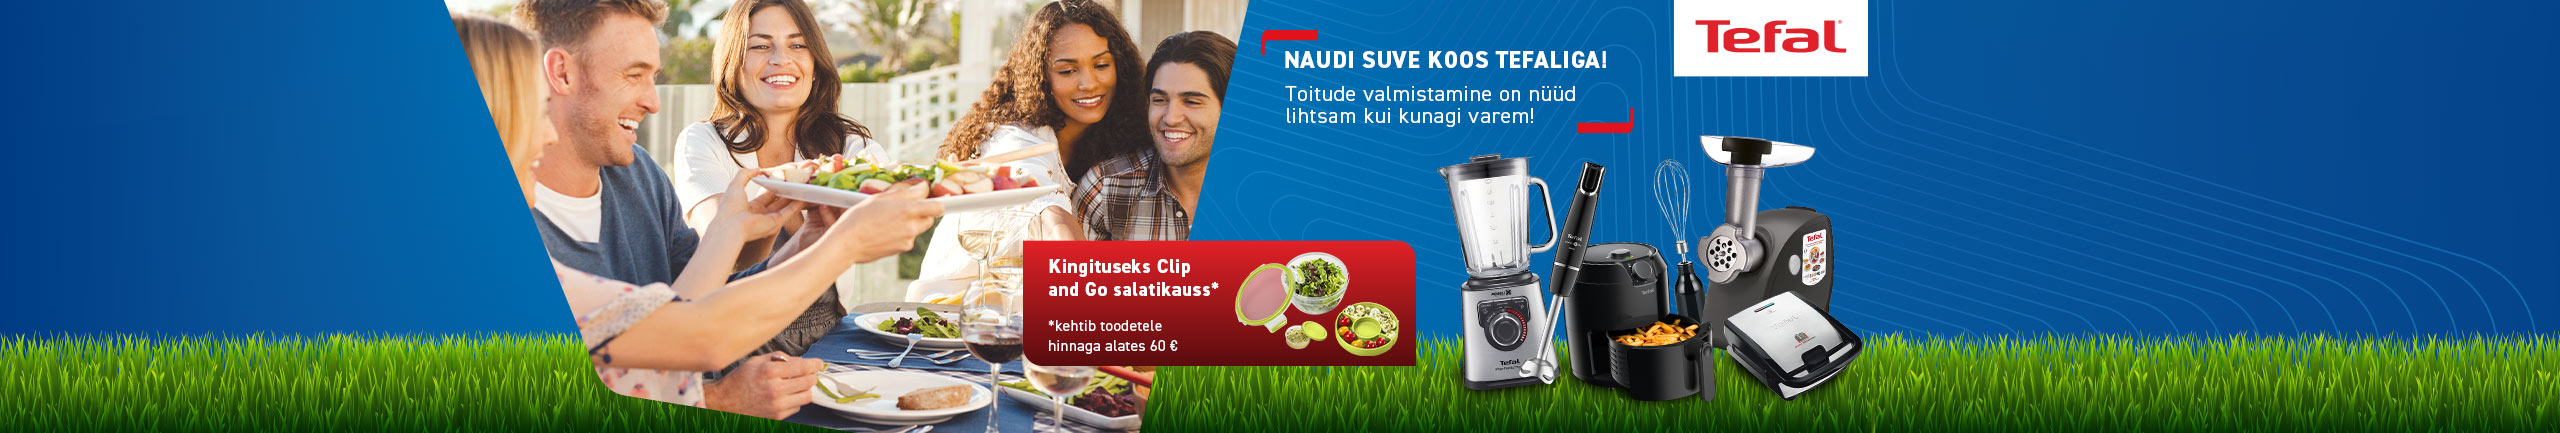 Buy Tefal kitchen appliance and get Tefal Clip and Go salad bowl as a gift